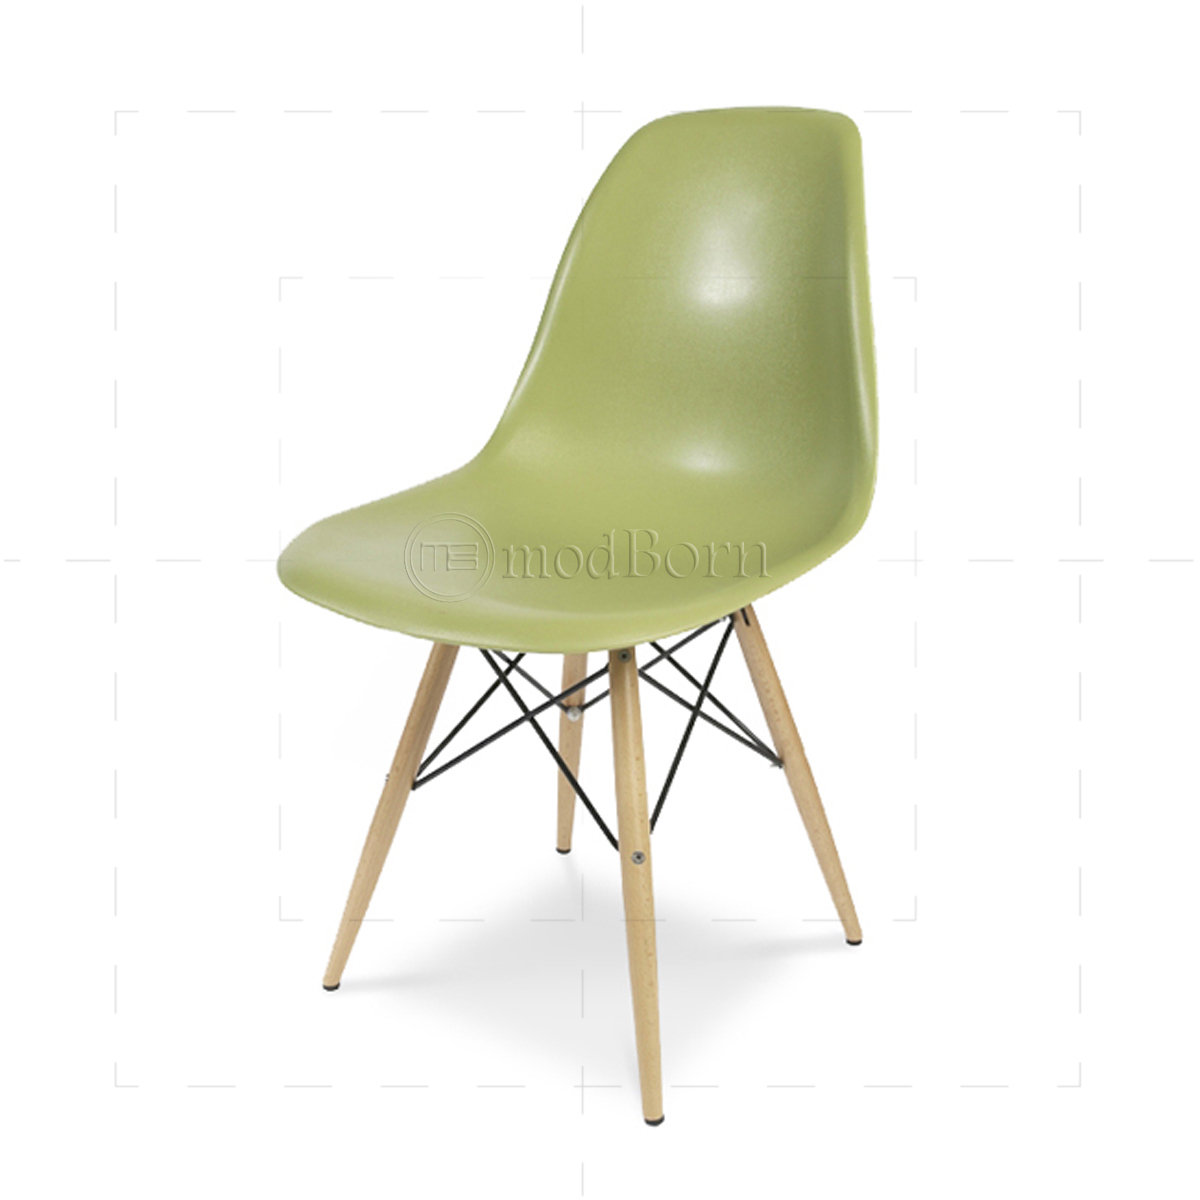 Eames style dining dsw chair green replica for Eames chair replica deutschland